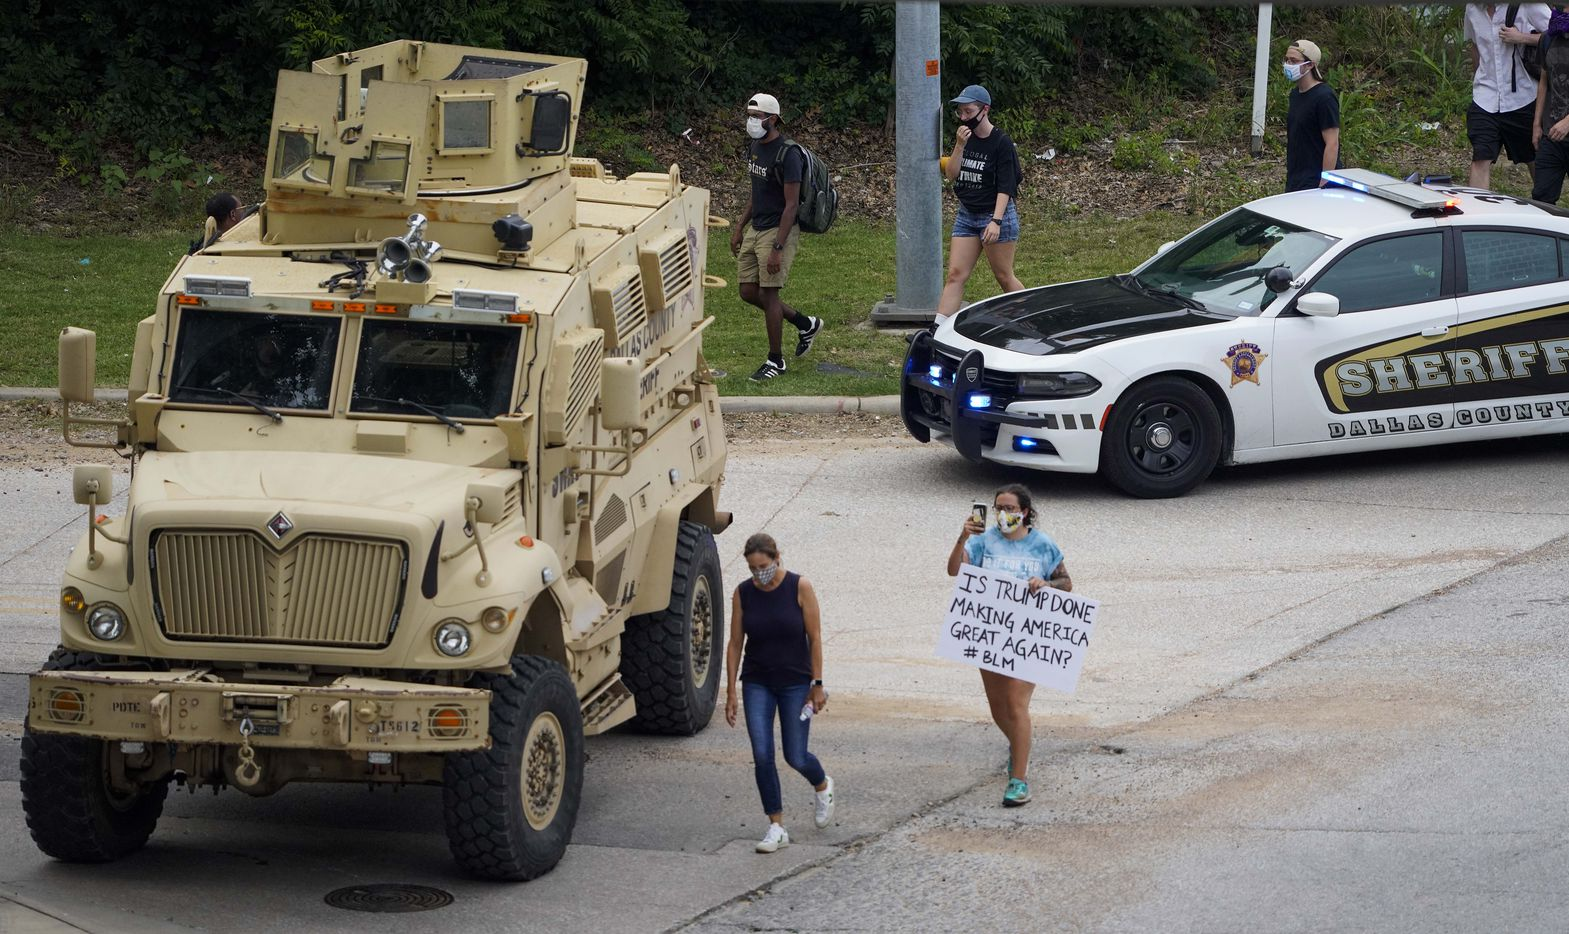 Demonstrators pass law enforcement vehicles as they head to a rally the Frank Crowley Courts Building as protests continue after the death of George Floyd on Monday, June 1, 2020, in Dallas.